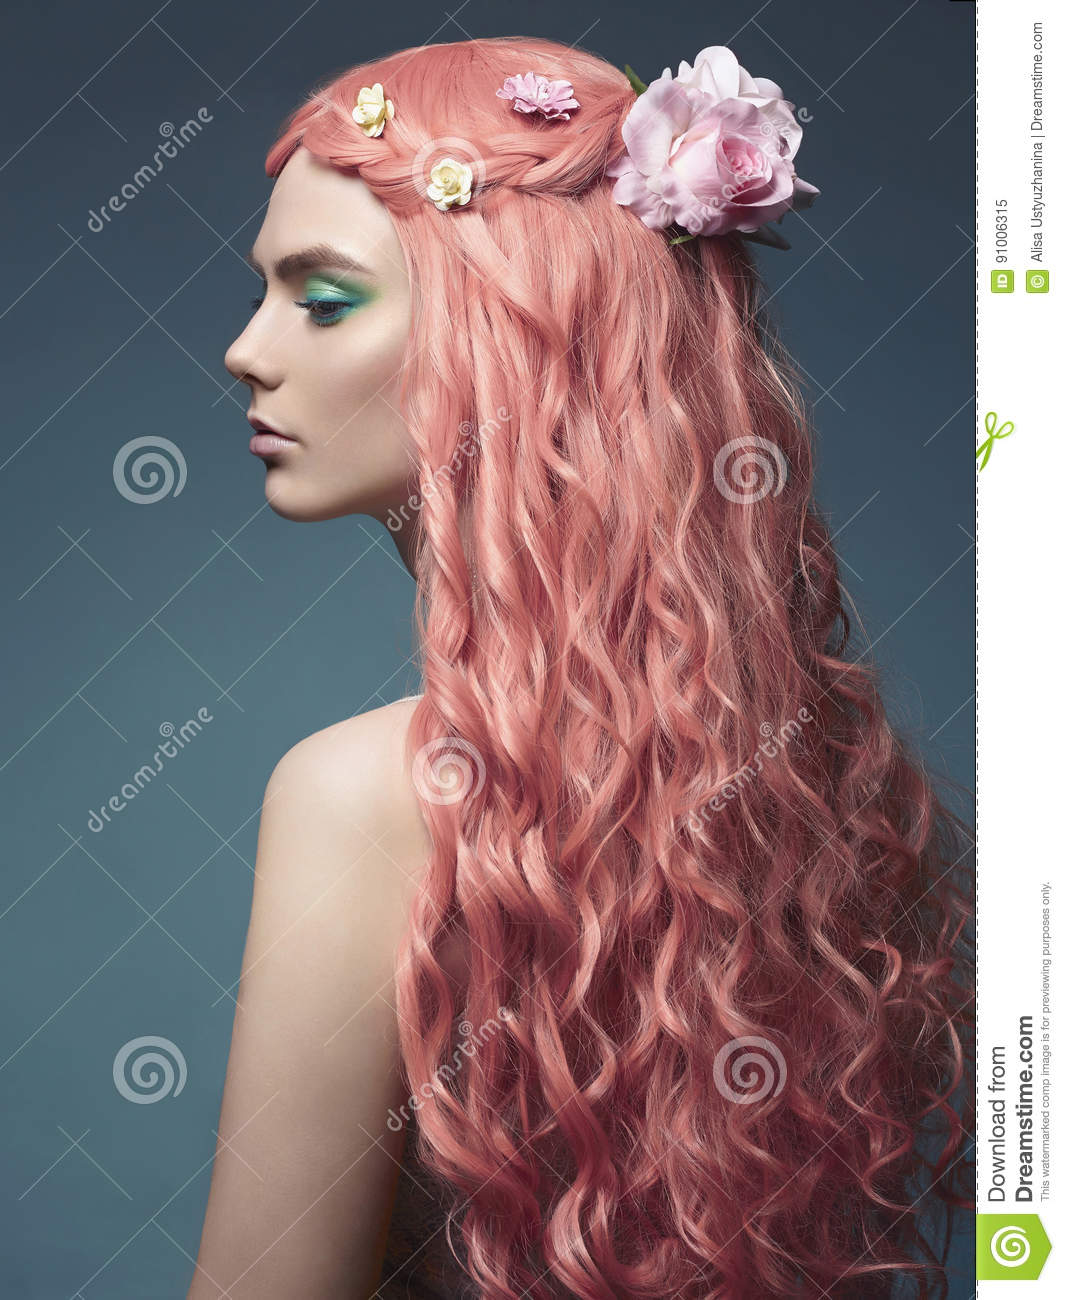 Beautiful girl with long pink hair and flowers stock image image beautiful girl with long pink hair and flowers izmirmasajfo Gallery